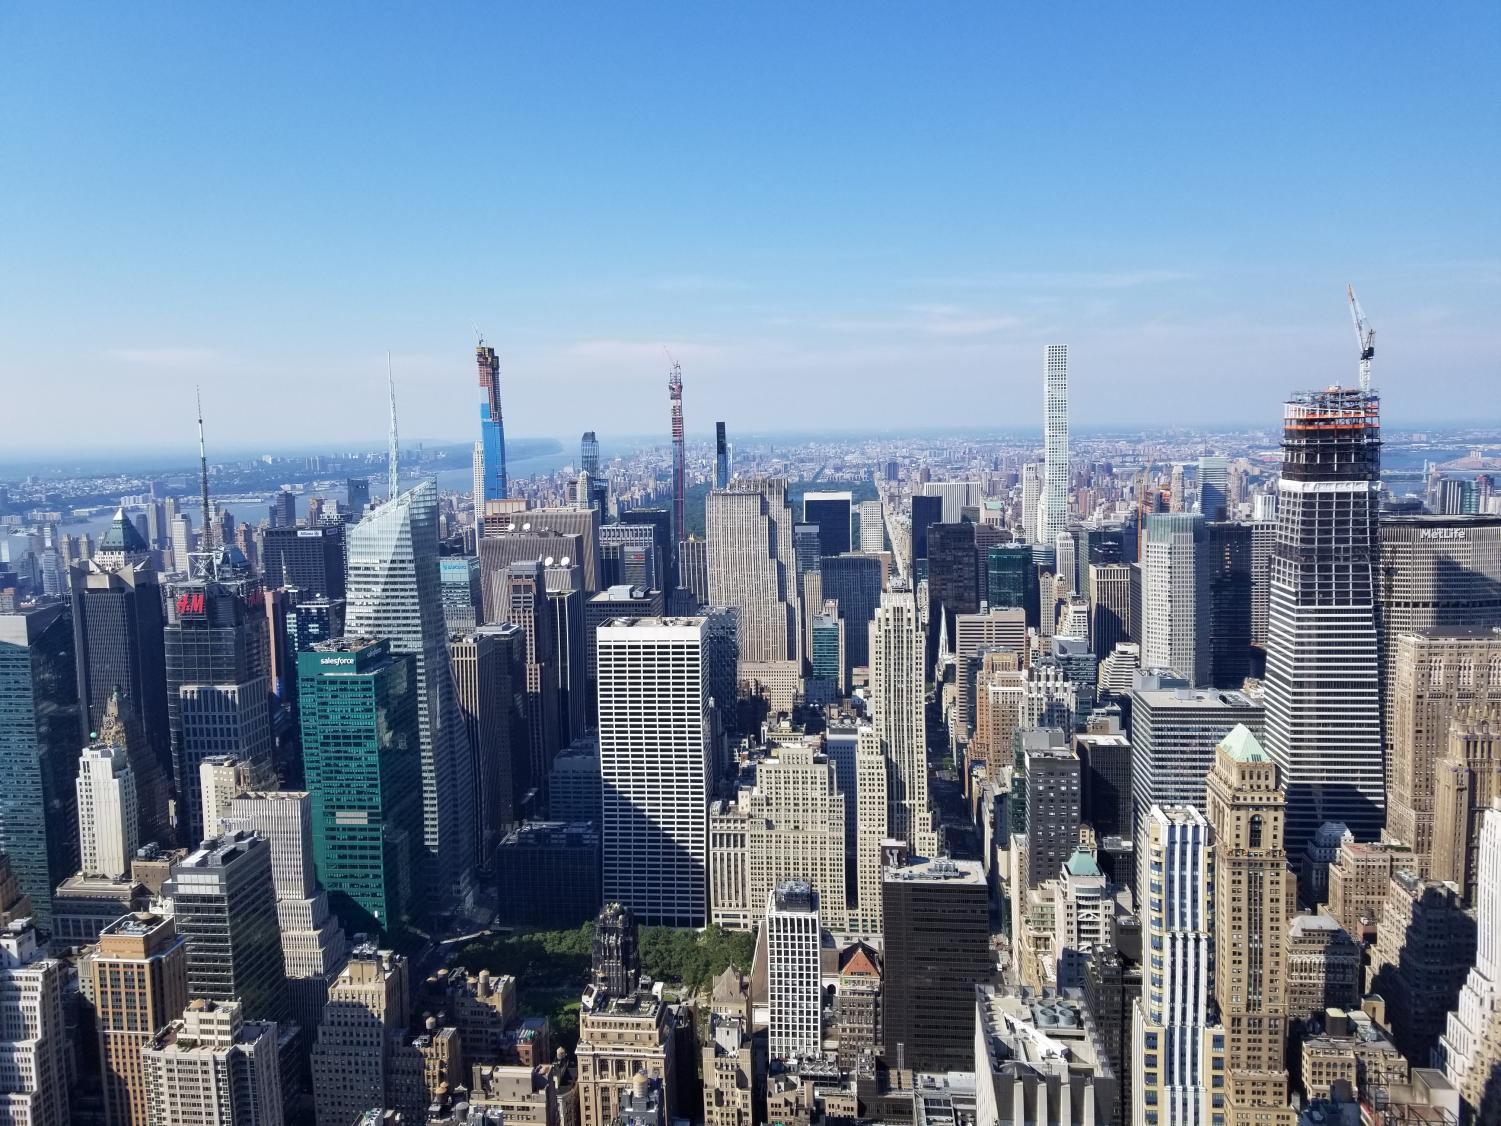 Shanahan captured the New York City skyline from above.